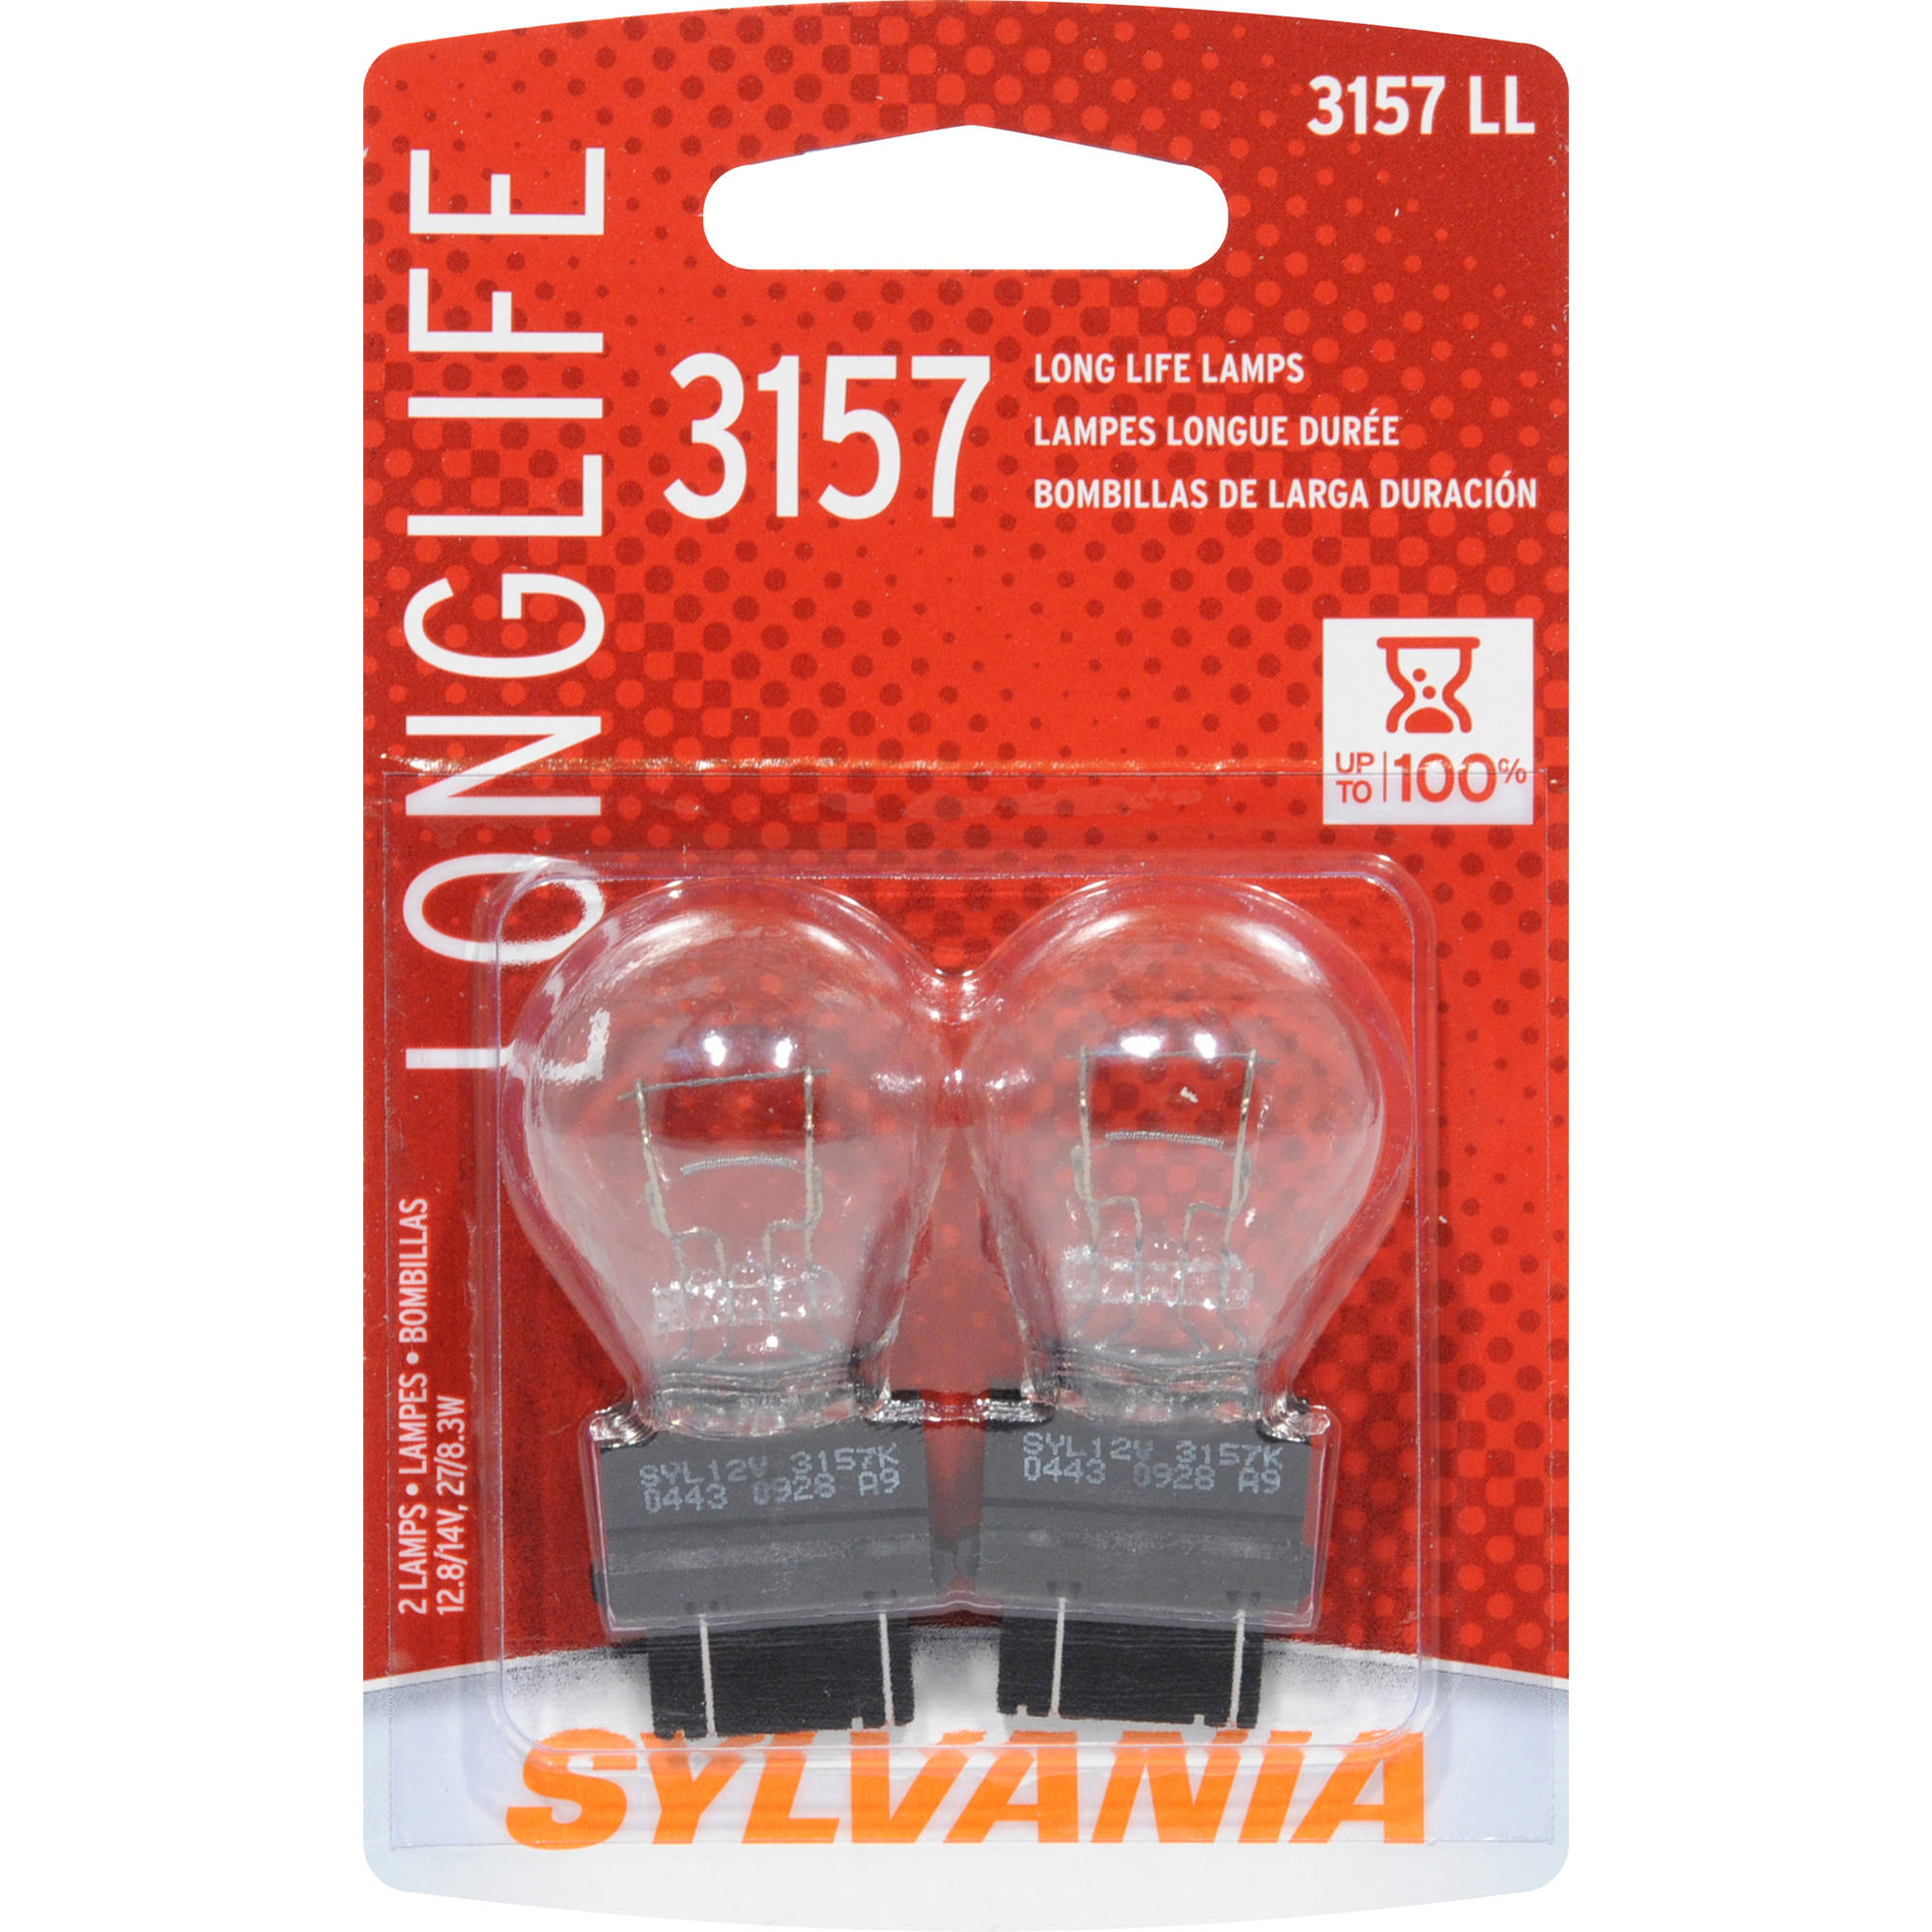 7bc2ff75-c5ef-429c-aca0-236515896bd4_1.c379638c5cc53f2c750de3f0e71bf422 Wonderful toyota Camry 2008 Light Bulb Size Cars Trend